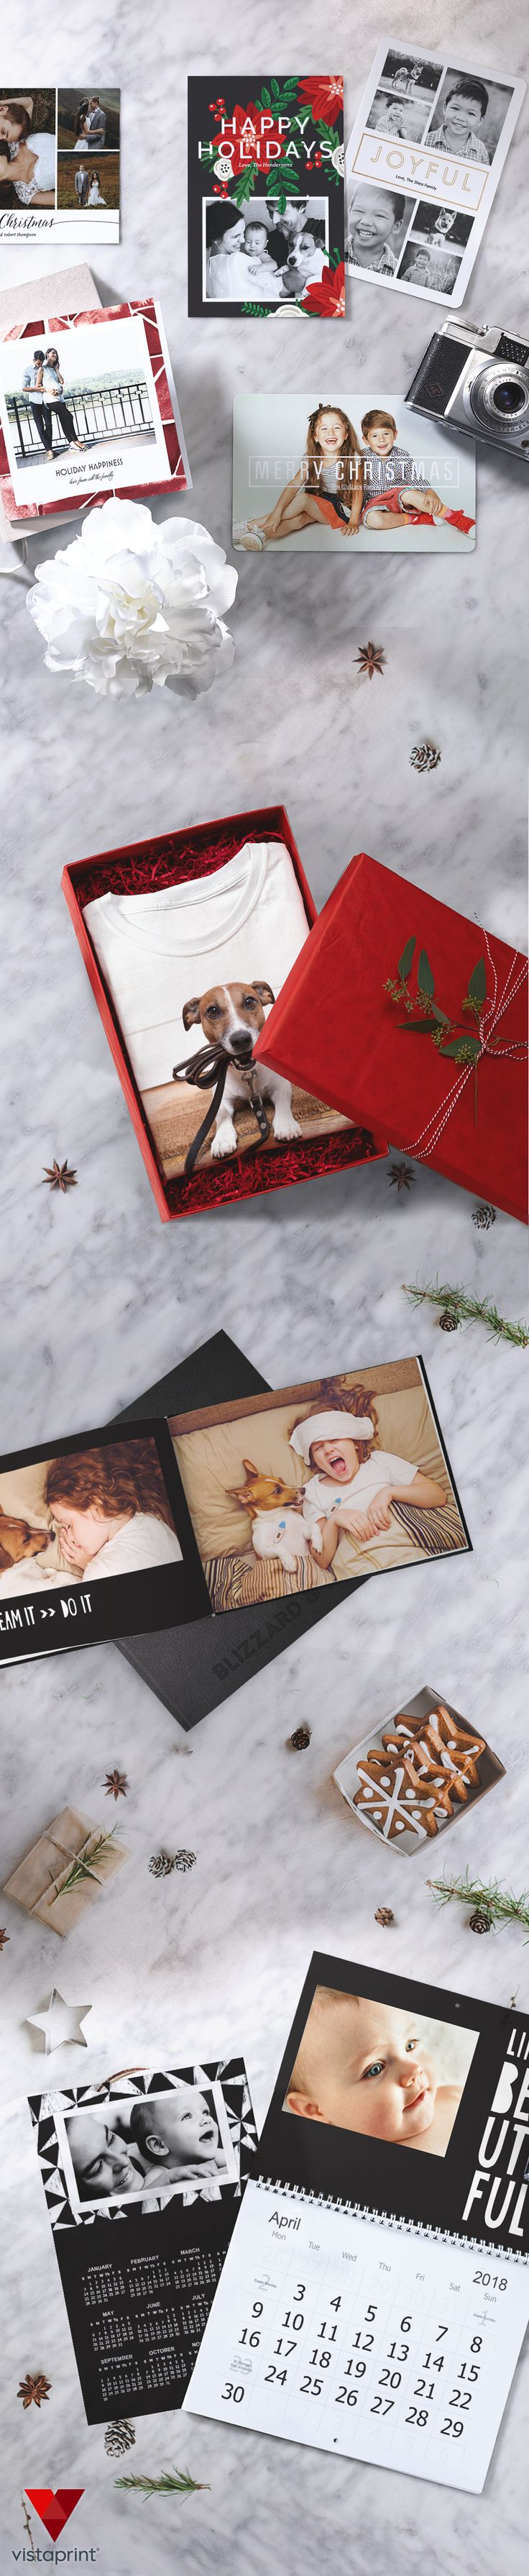 This season, create keepsakes they'll love all year long. From mugs to wall calendars, Vistaprint has products that are simple to personalise with all your favourite photos starting at $10. Delivery fees apply. We all have a bucket list, whats on yours?